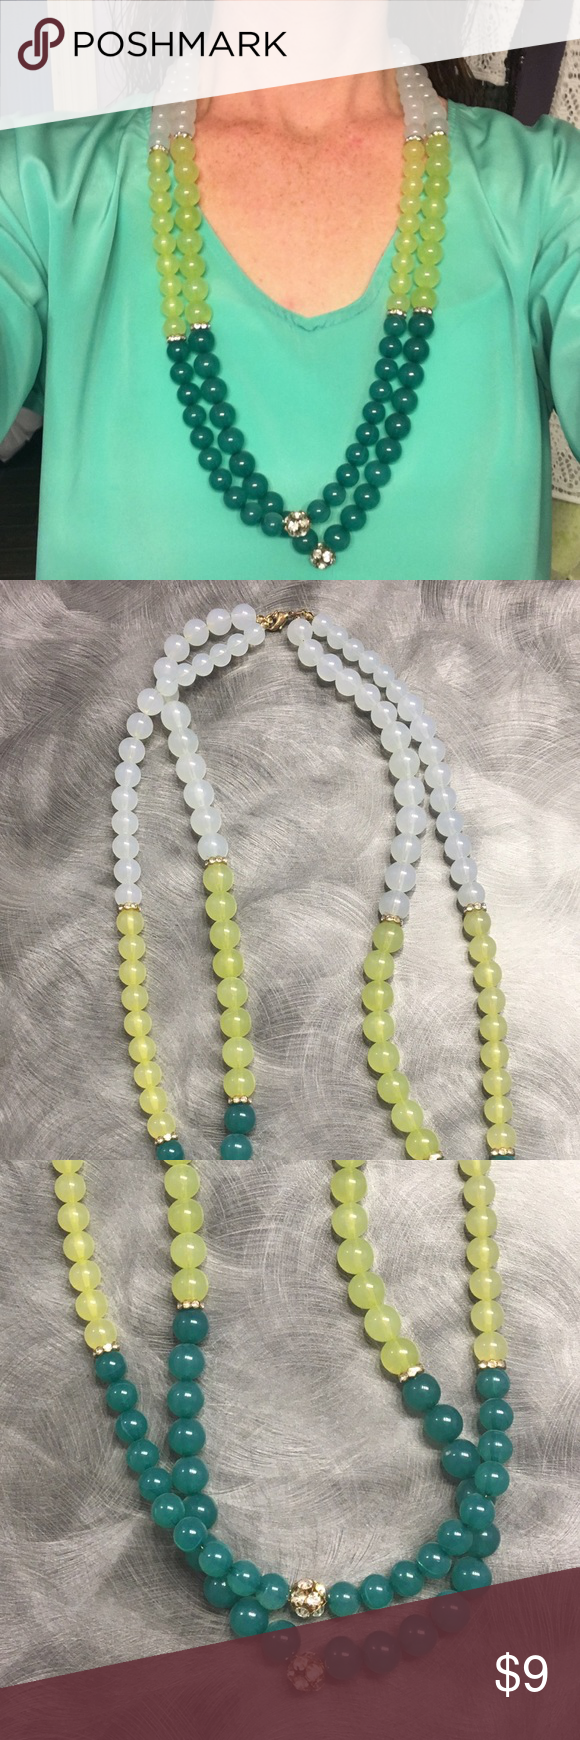 Multi-color bead necklace Green, yellow and opaque beads flatter a variety of tops. Embellished with rhinestone beads and clasp backing. Jewelry Necklaces